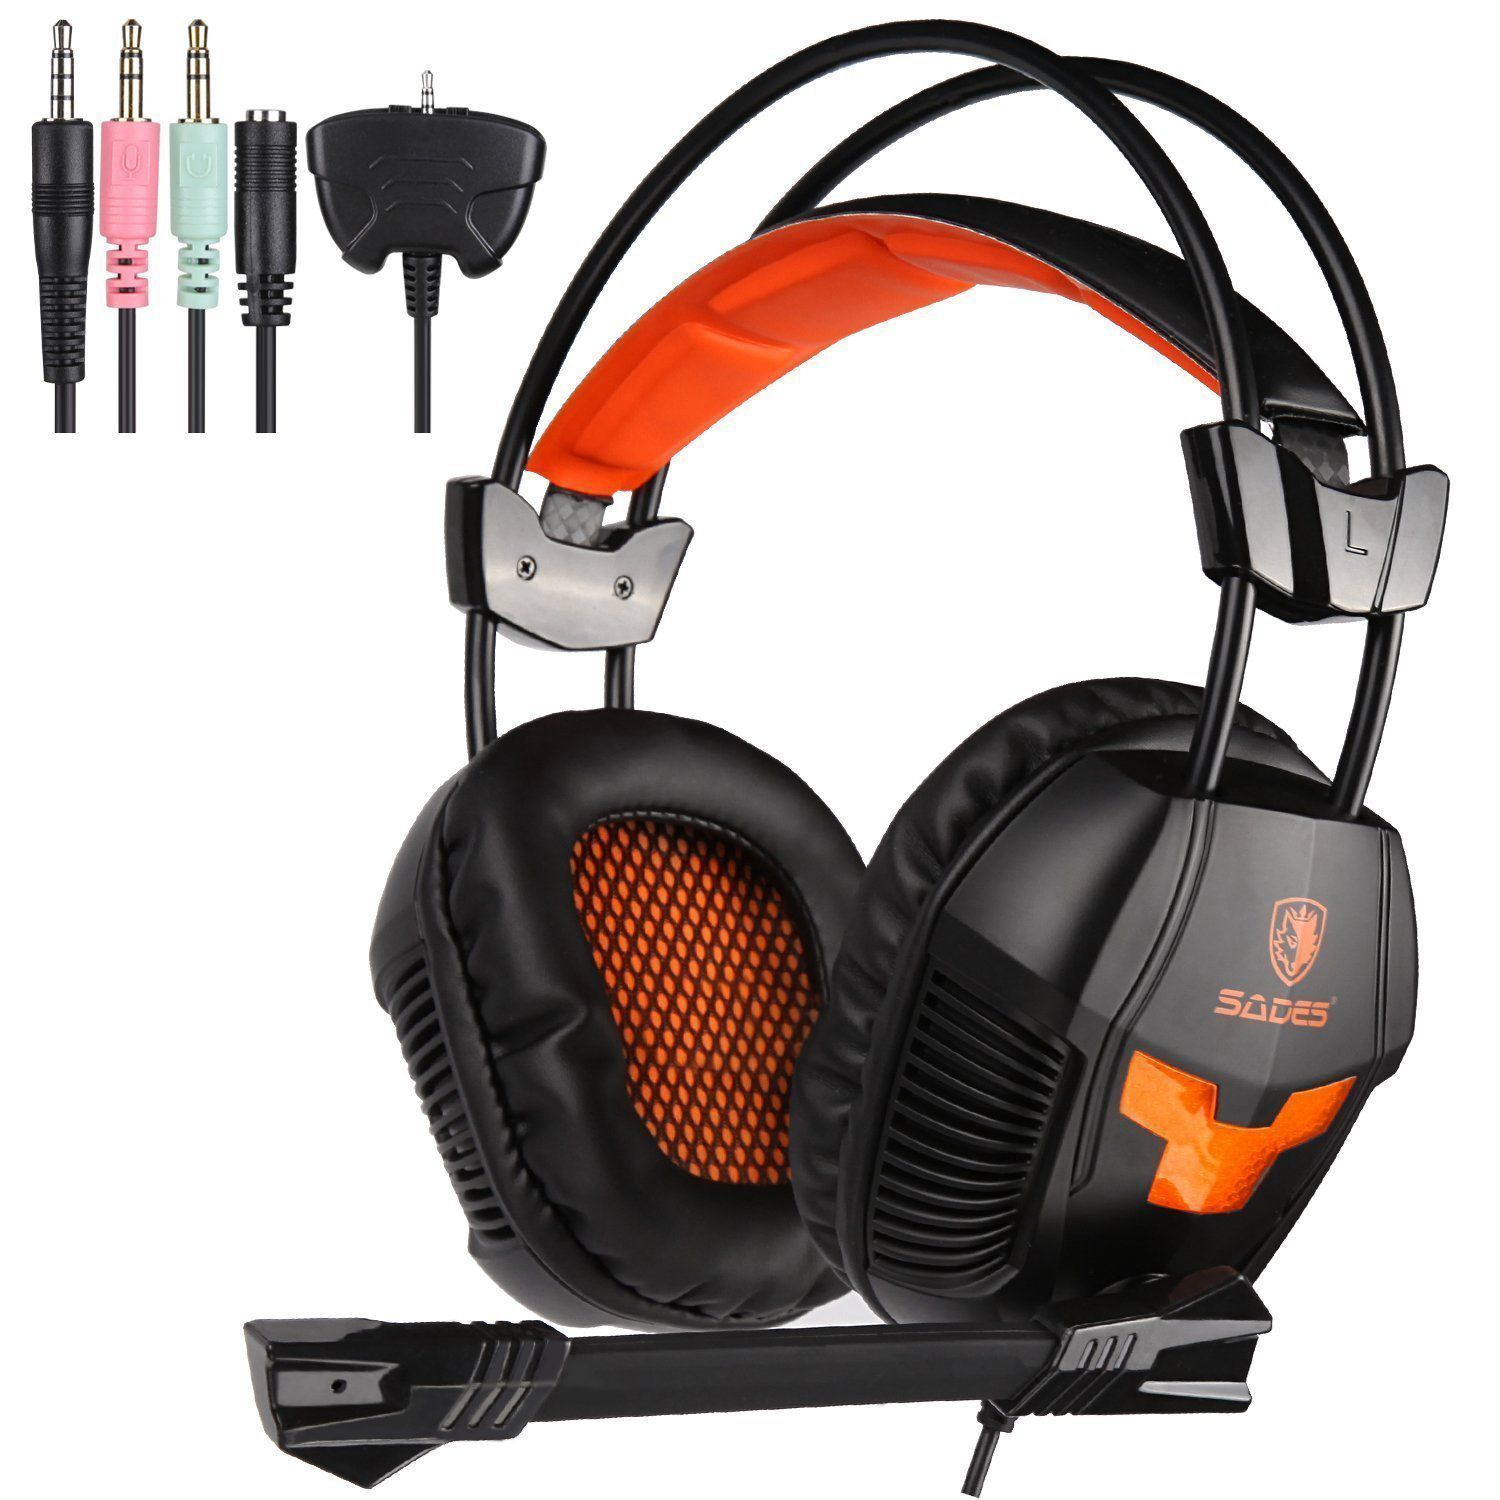 Top Deals Sades SA-921 Stereo Gaming Headphones for a Mobile Phone PS4/Xbox 360/MAC/PSP/Laptop PC Gamer Headset Gaming Headpho наушники hifi xbox xbox 360 ps4 ps3 pc gaming headphones